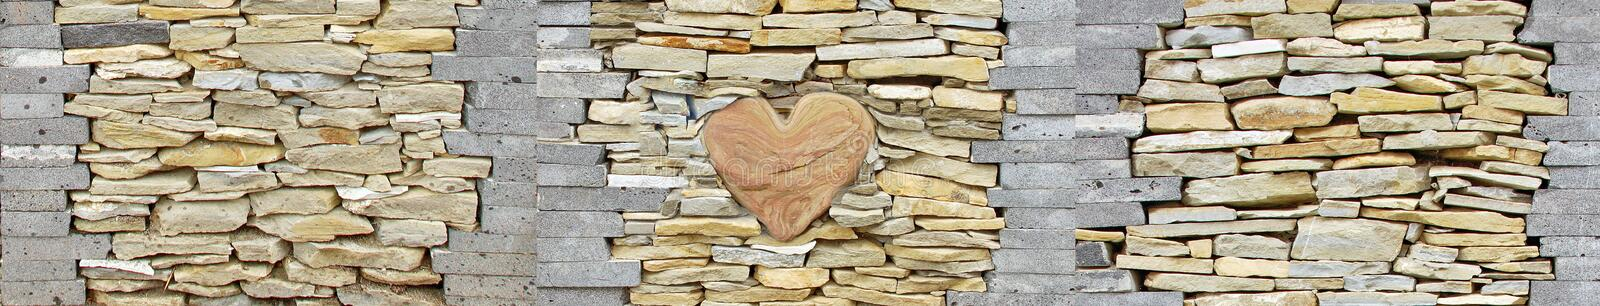 Heart of stone wall pieces natural rock stone limestone Sandstone texture background light. Rock texture. Exterior element stock photography